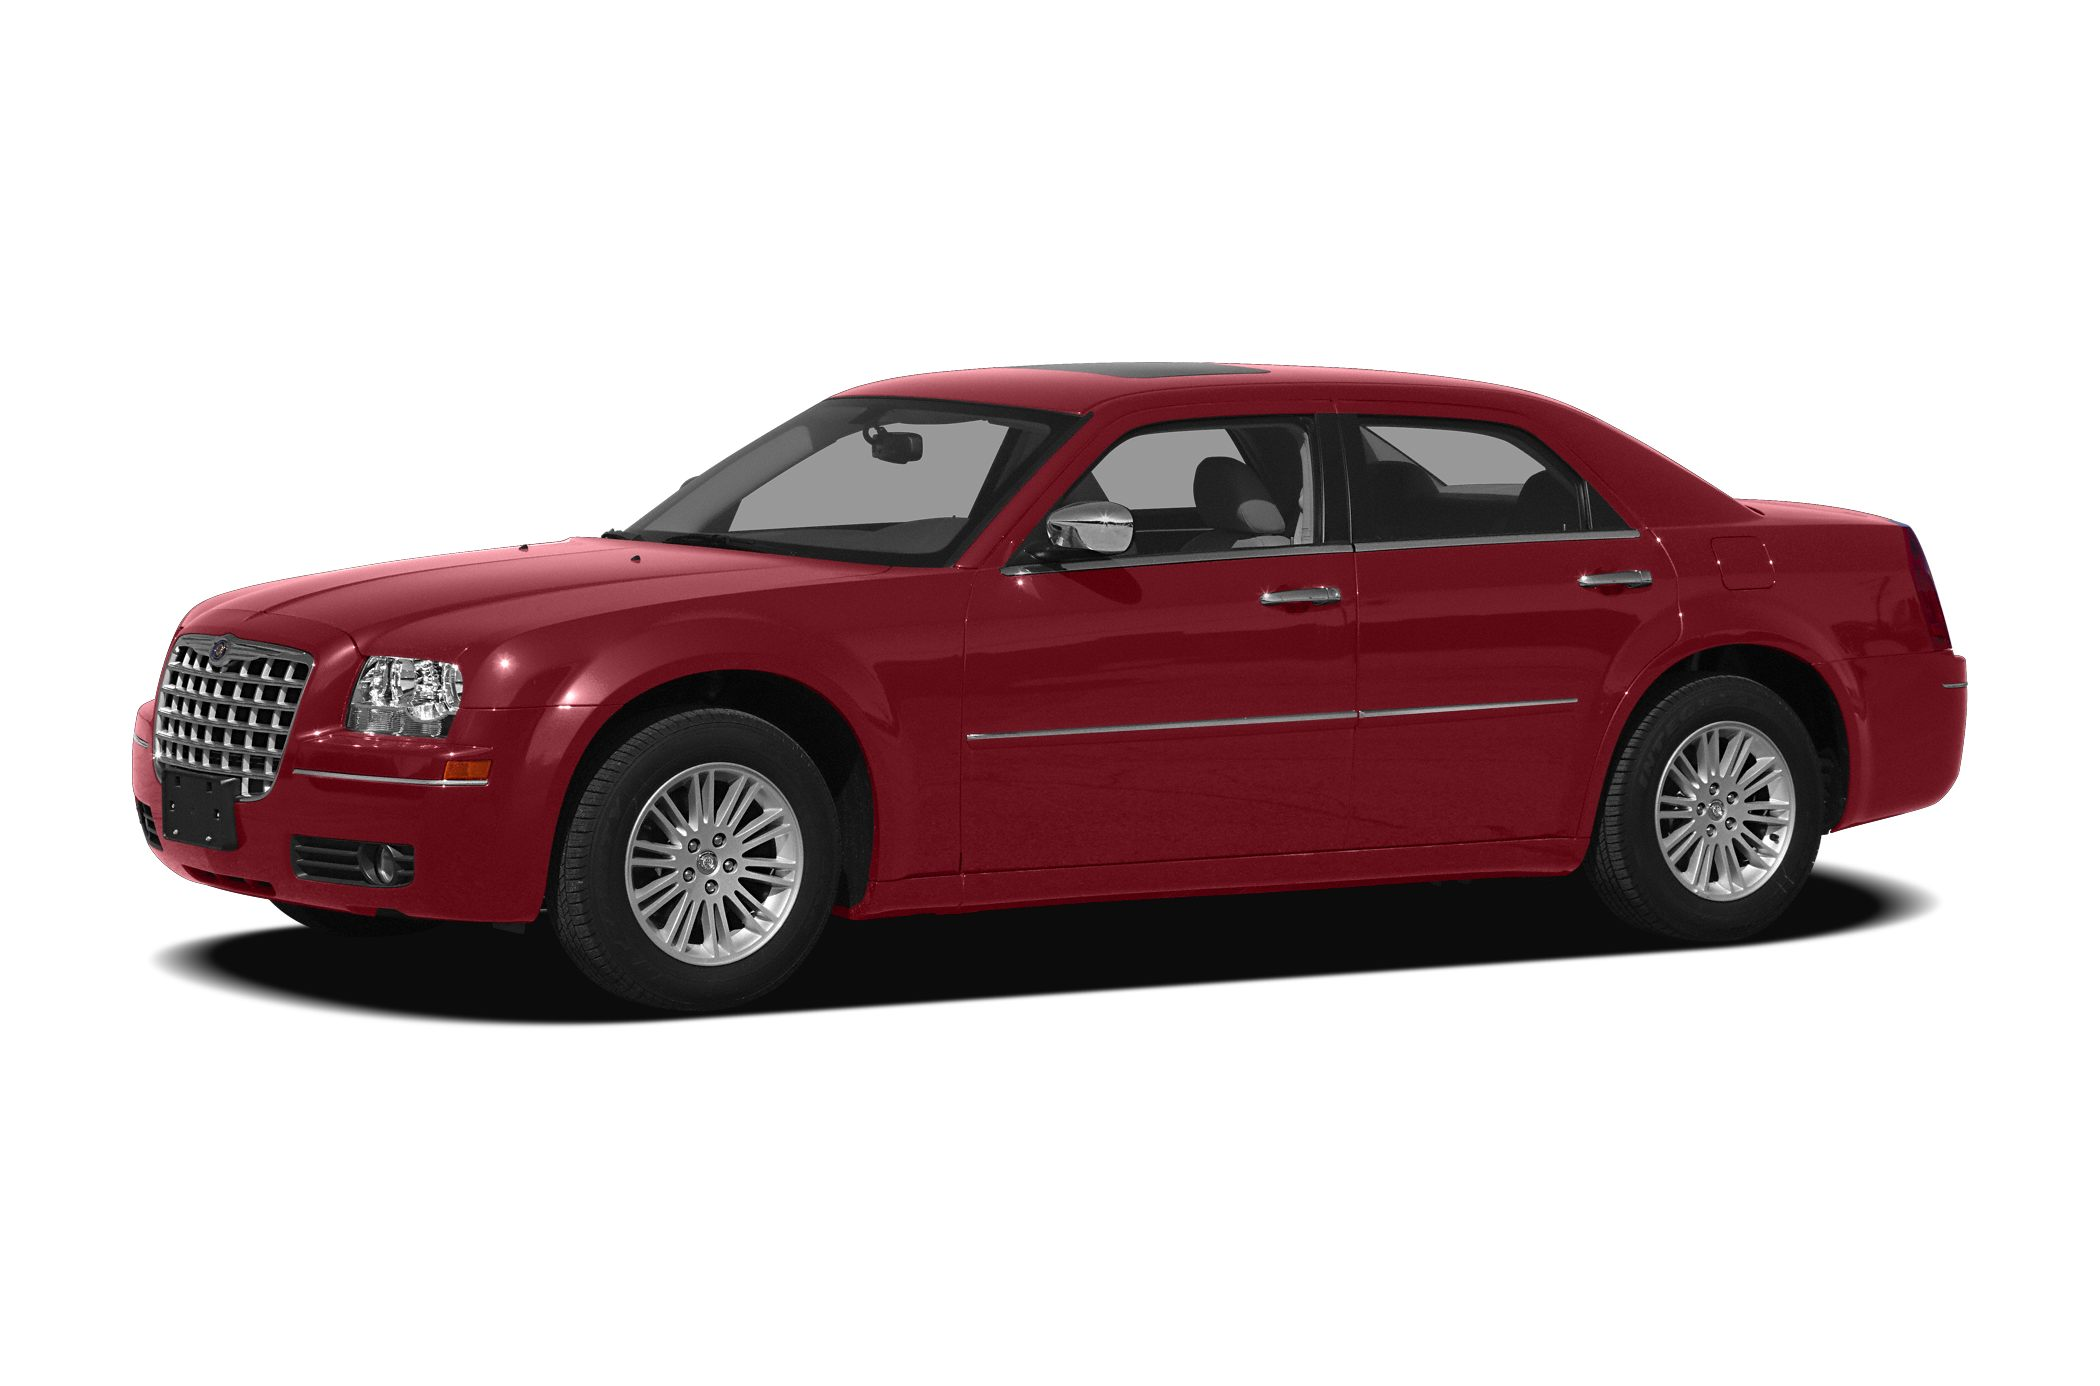 2010 Chrysler 300 Touring/Signature/Executive Series Sedan for sale in Jeffersonville for $13,490 with 66,743 miles.